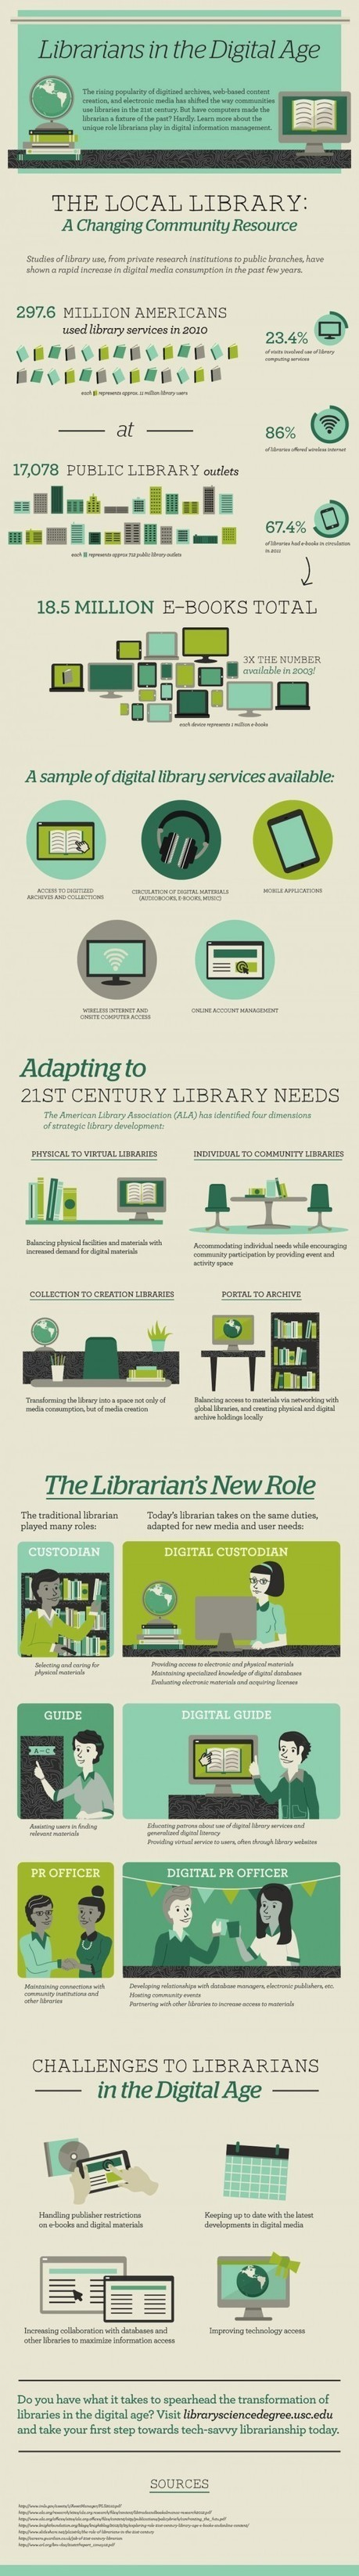 In digital age, librarians are needed more than ever [infographic] | Christian high School libraries | Scoop.it